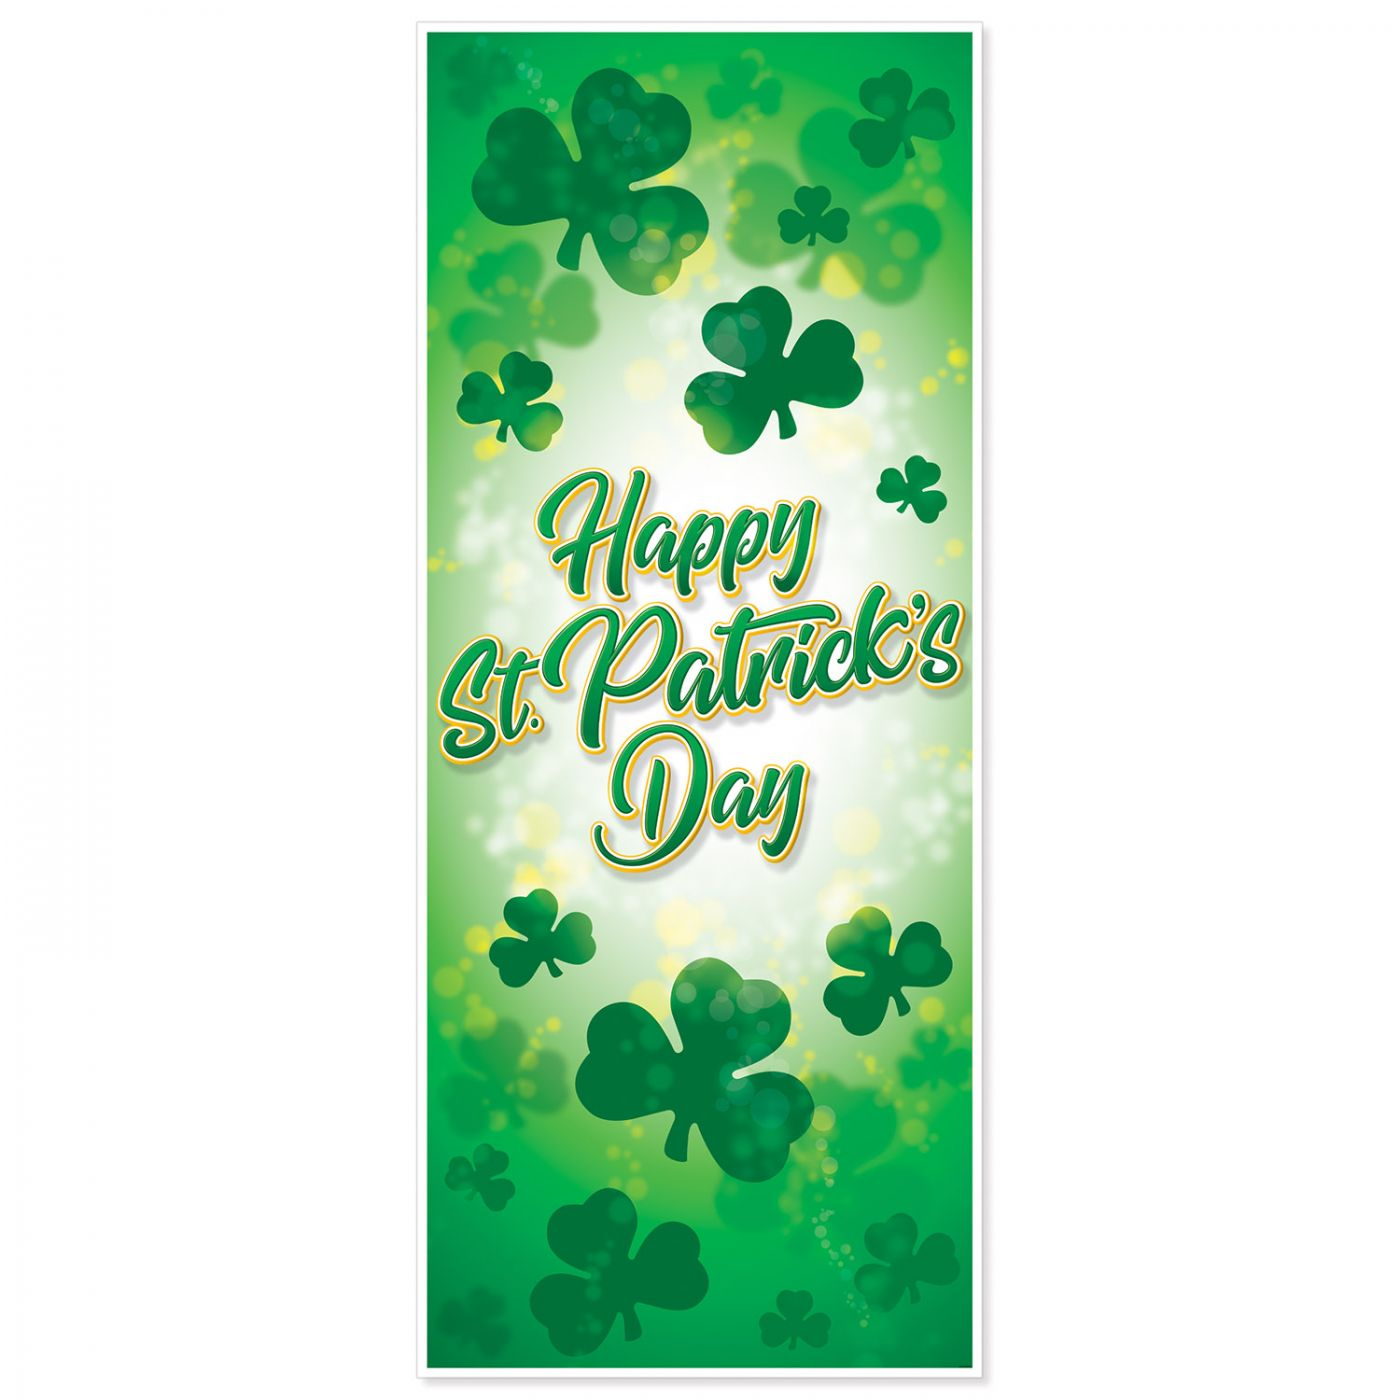 Happy St. Patrick's Day Door Cover image